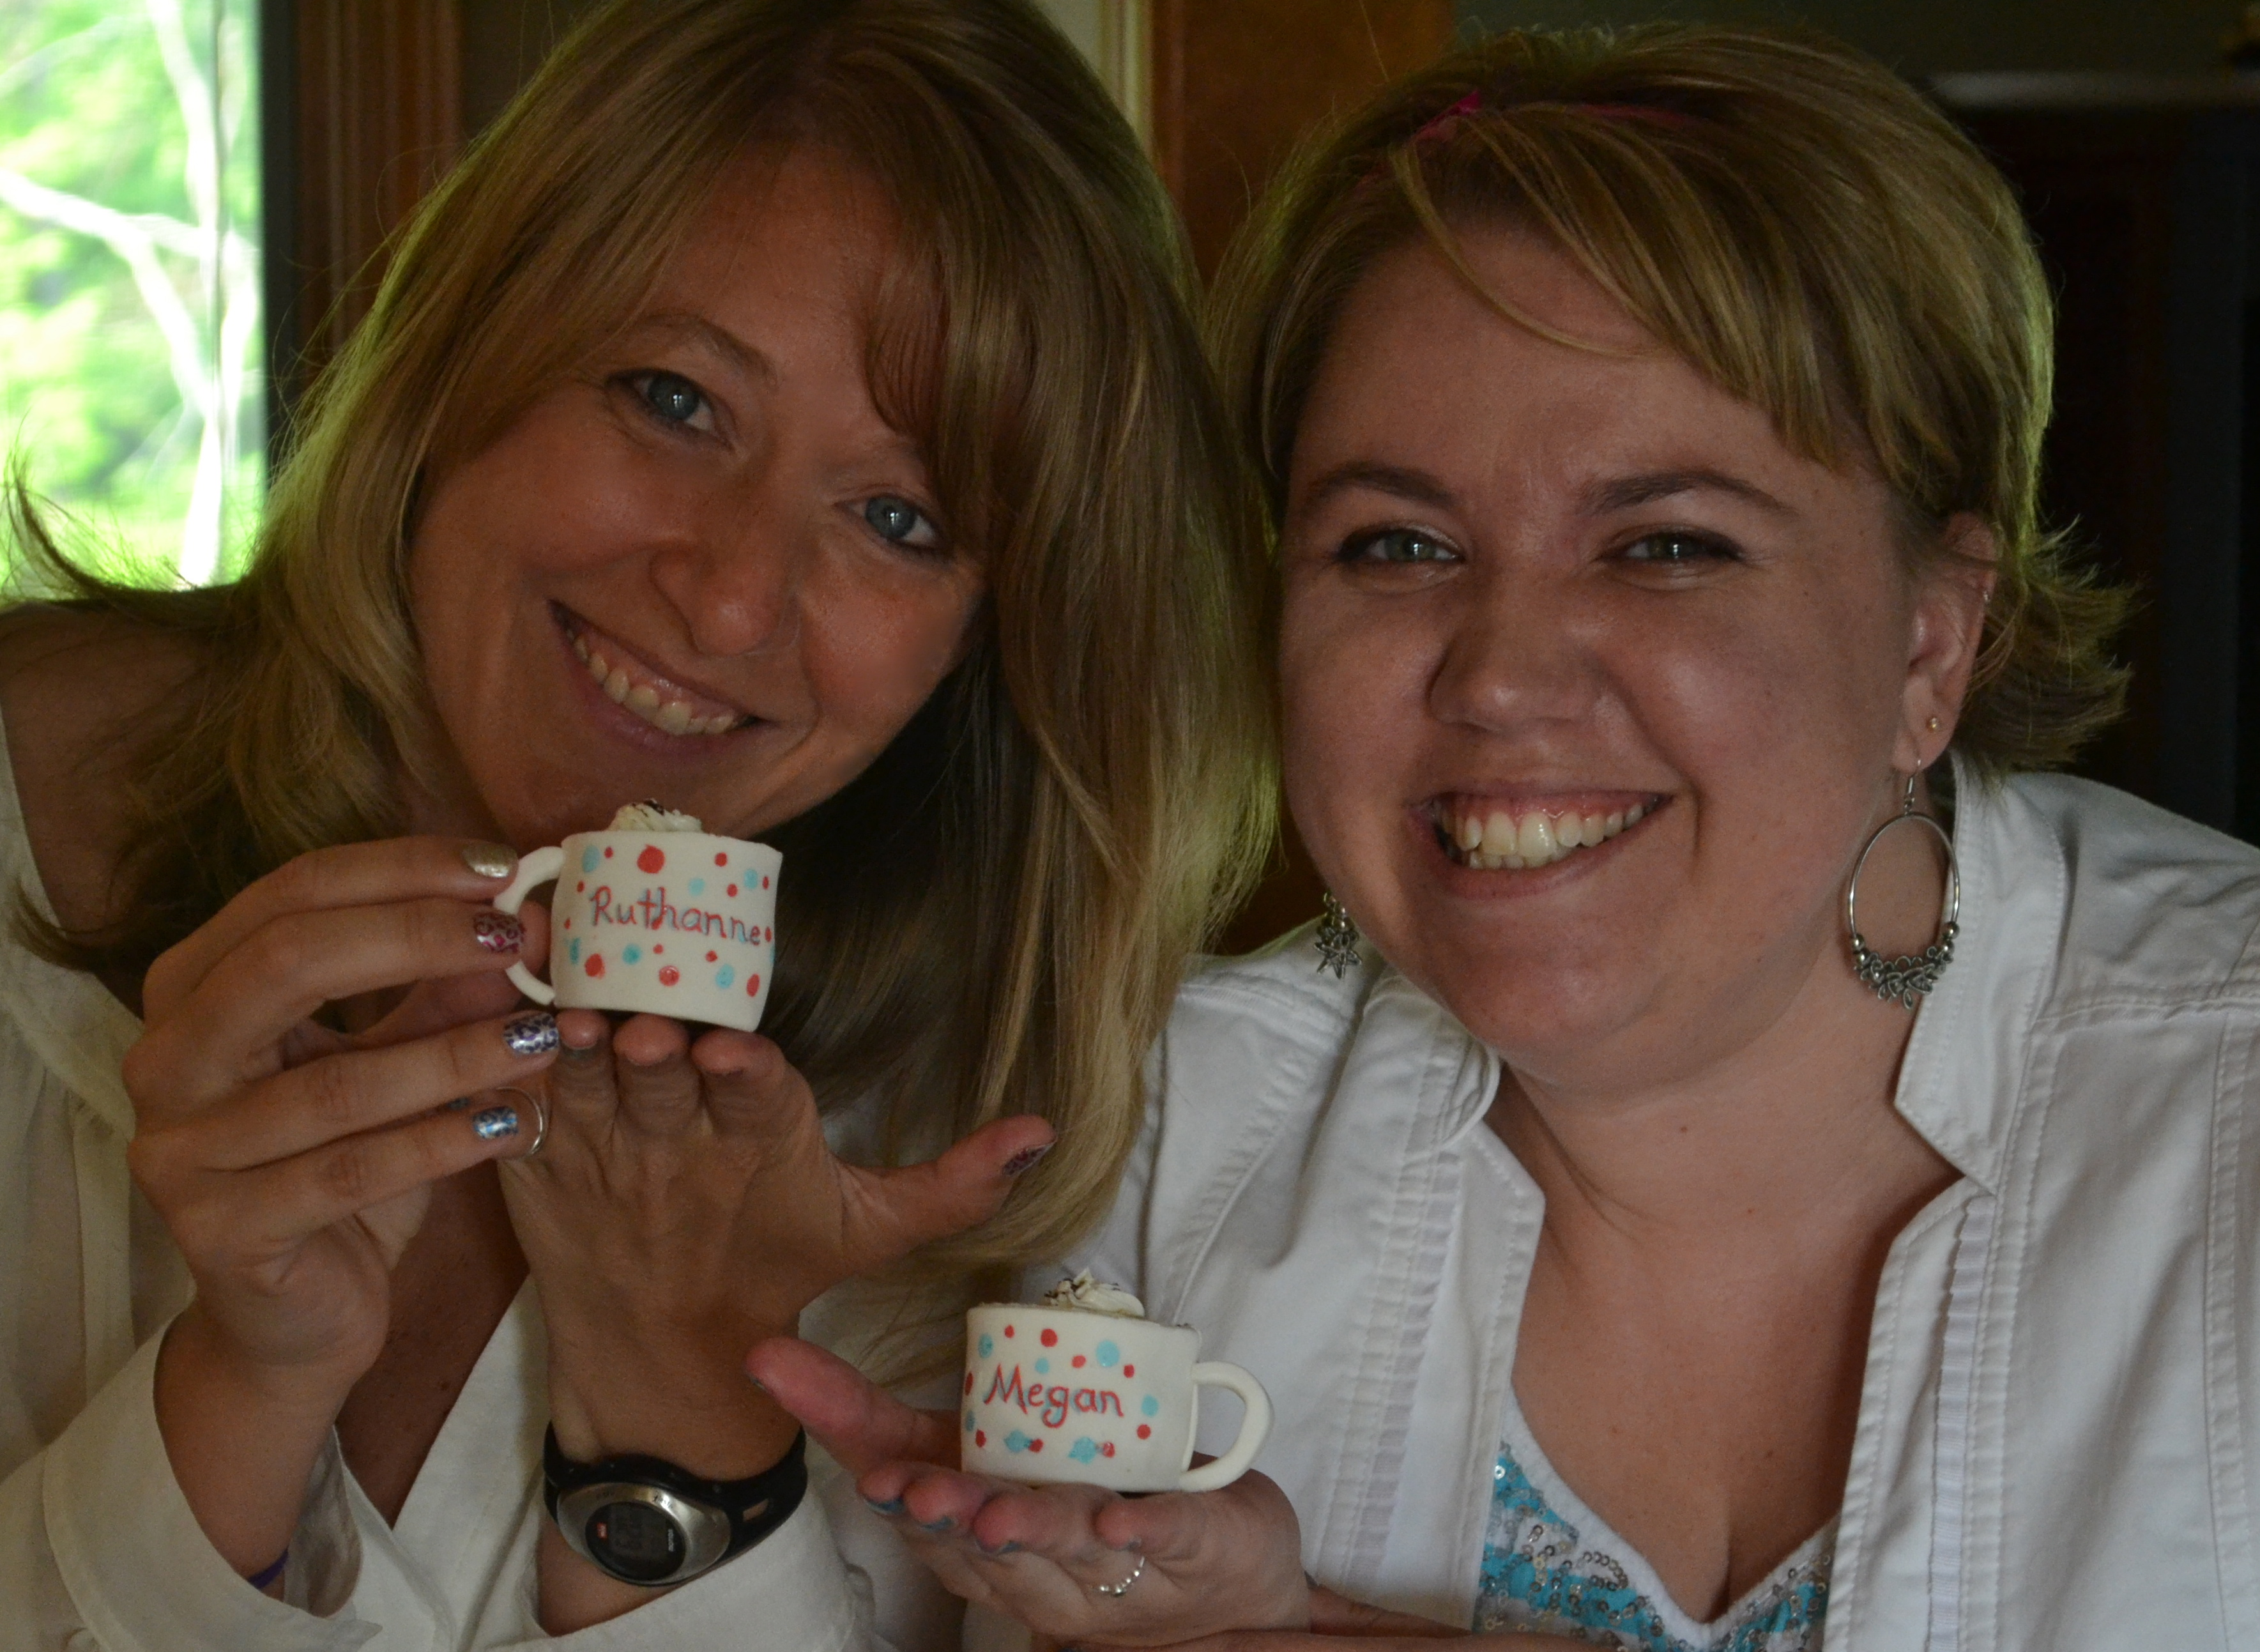 Holding our personalized mug cupcakes--technique coming soon to Easybaked!   Such a fun weekend!